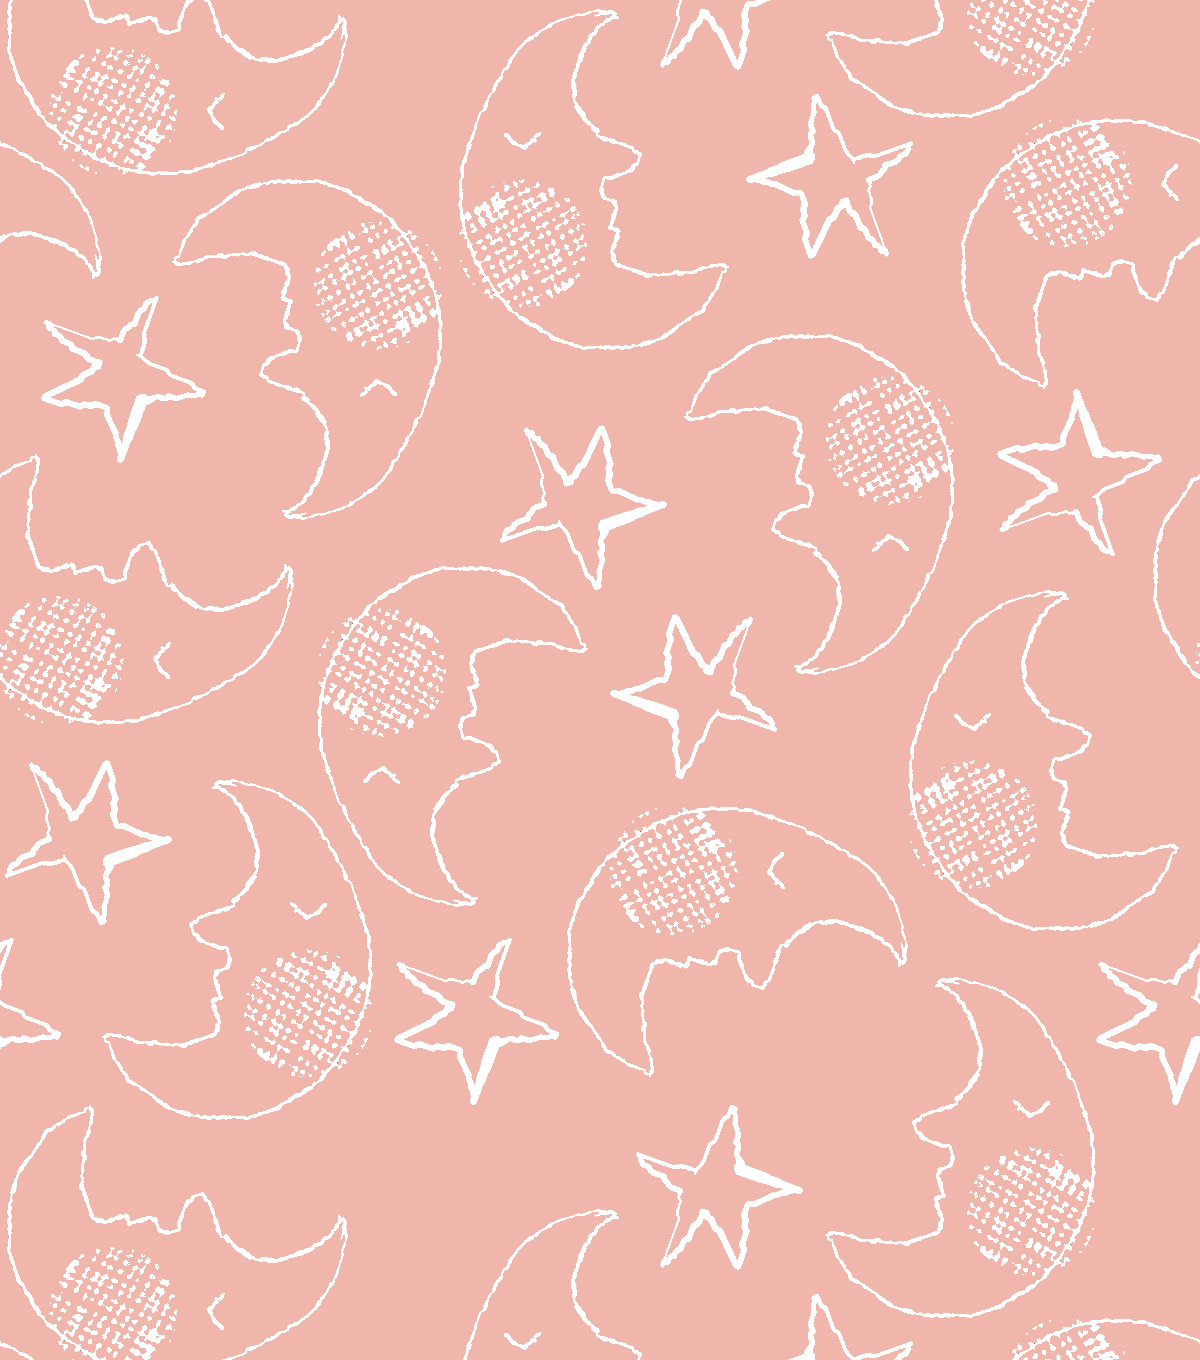 Nursery Flannel Fabric-Whimsy Moons on Coral